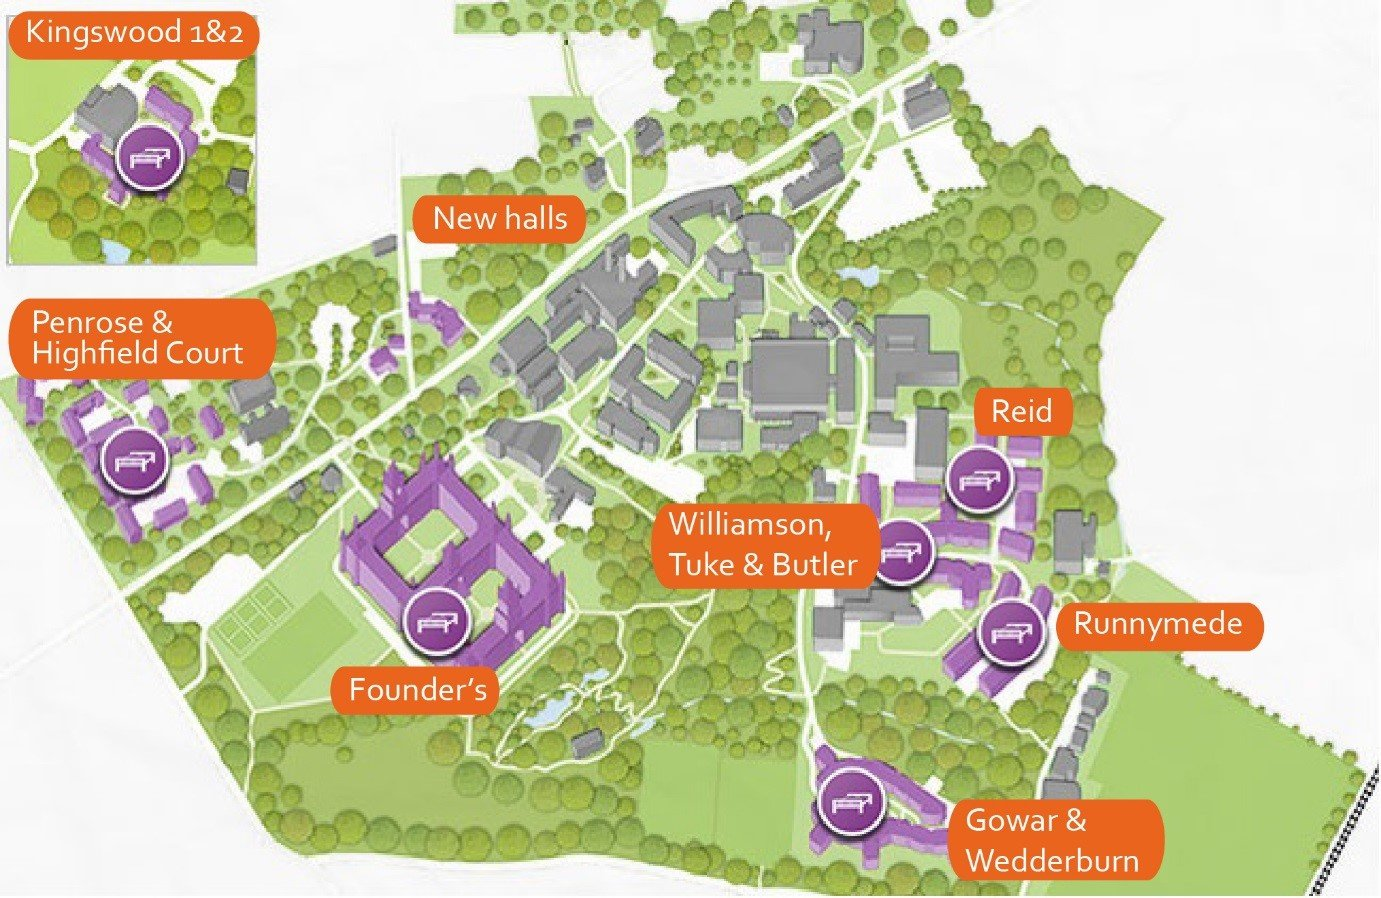 Royal Holloway Accommodation Guide 2017 - Q&A - The Student Room